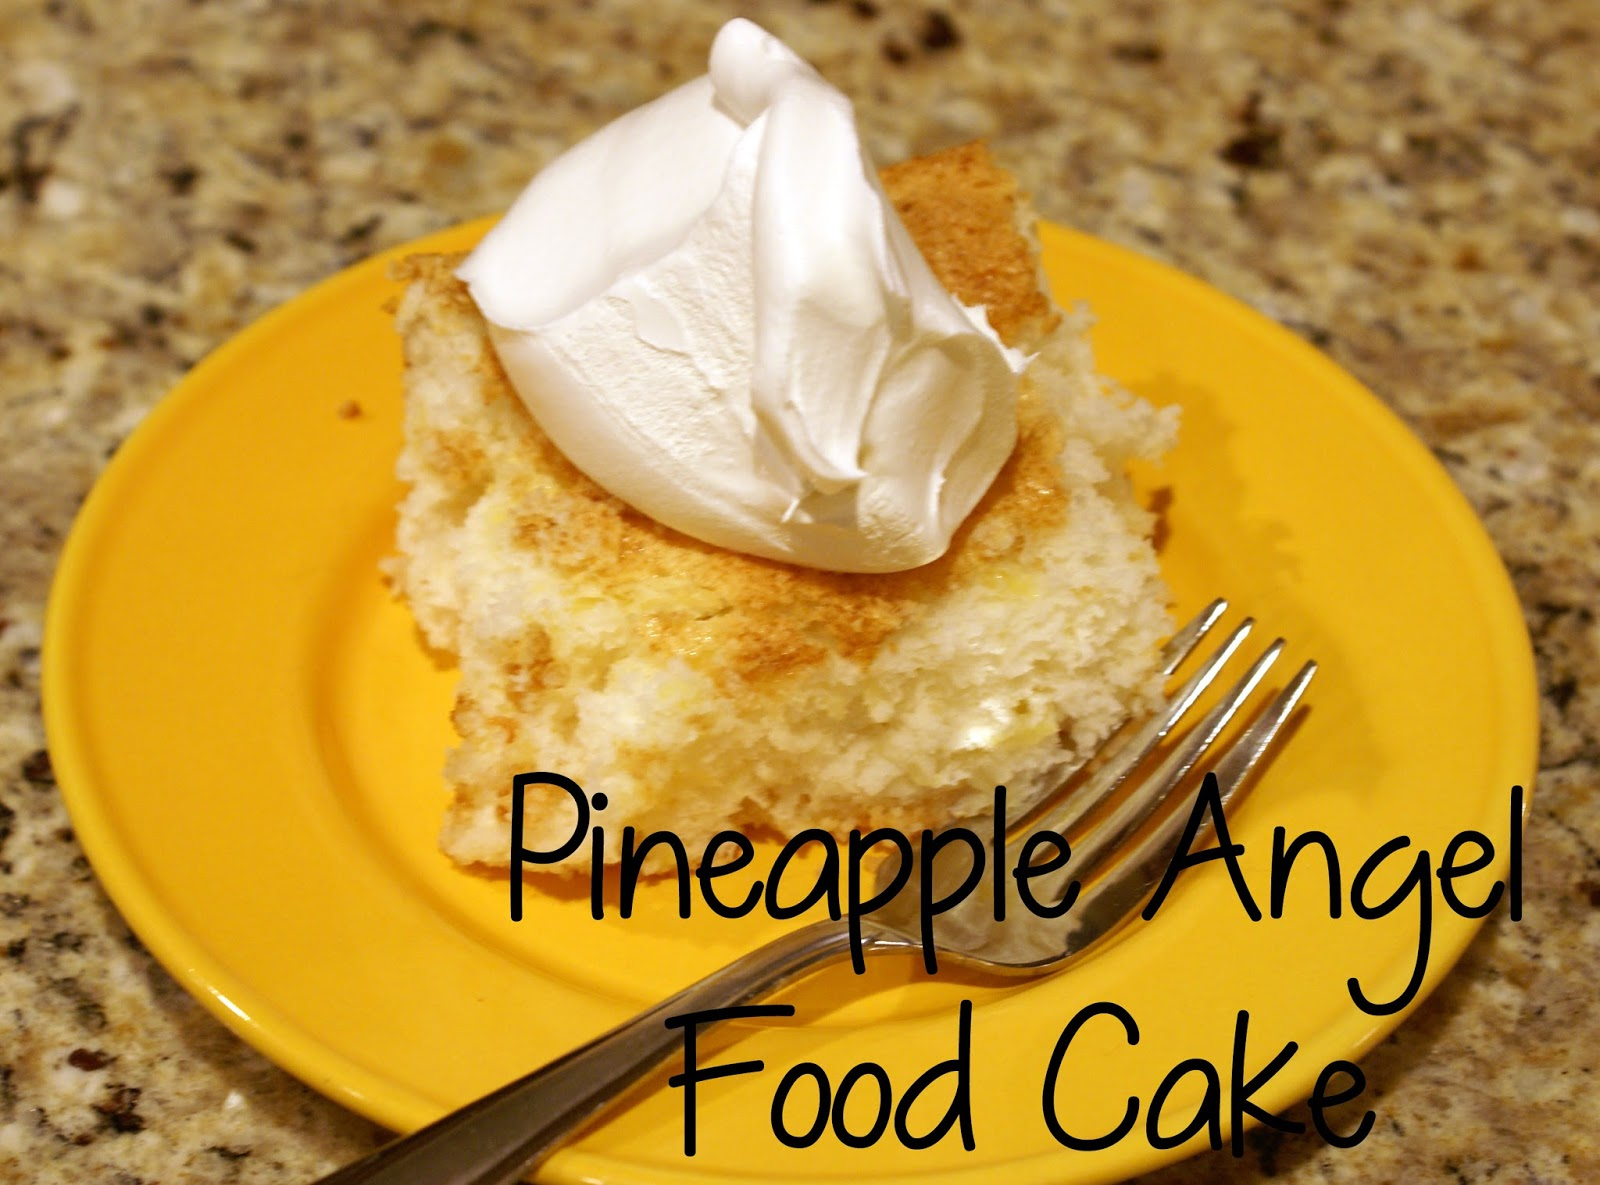 Pineapple And Angel Food Cake And Cool Whip